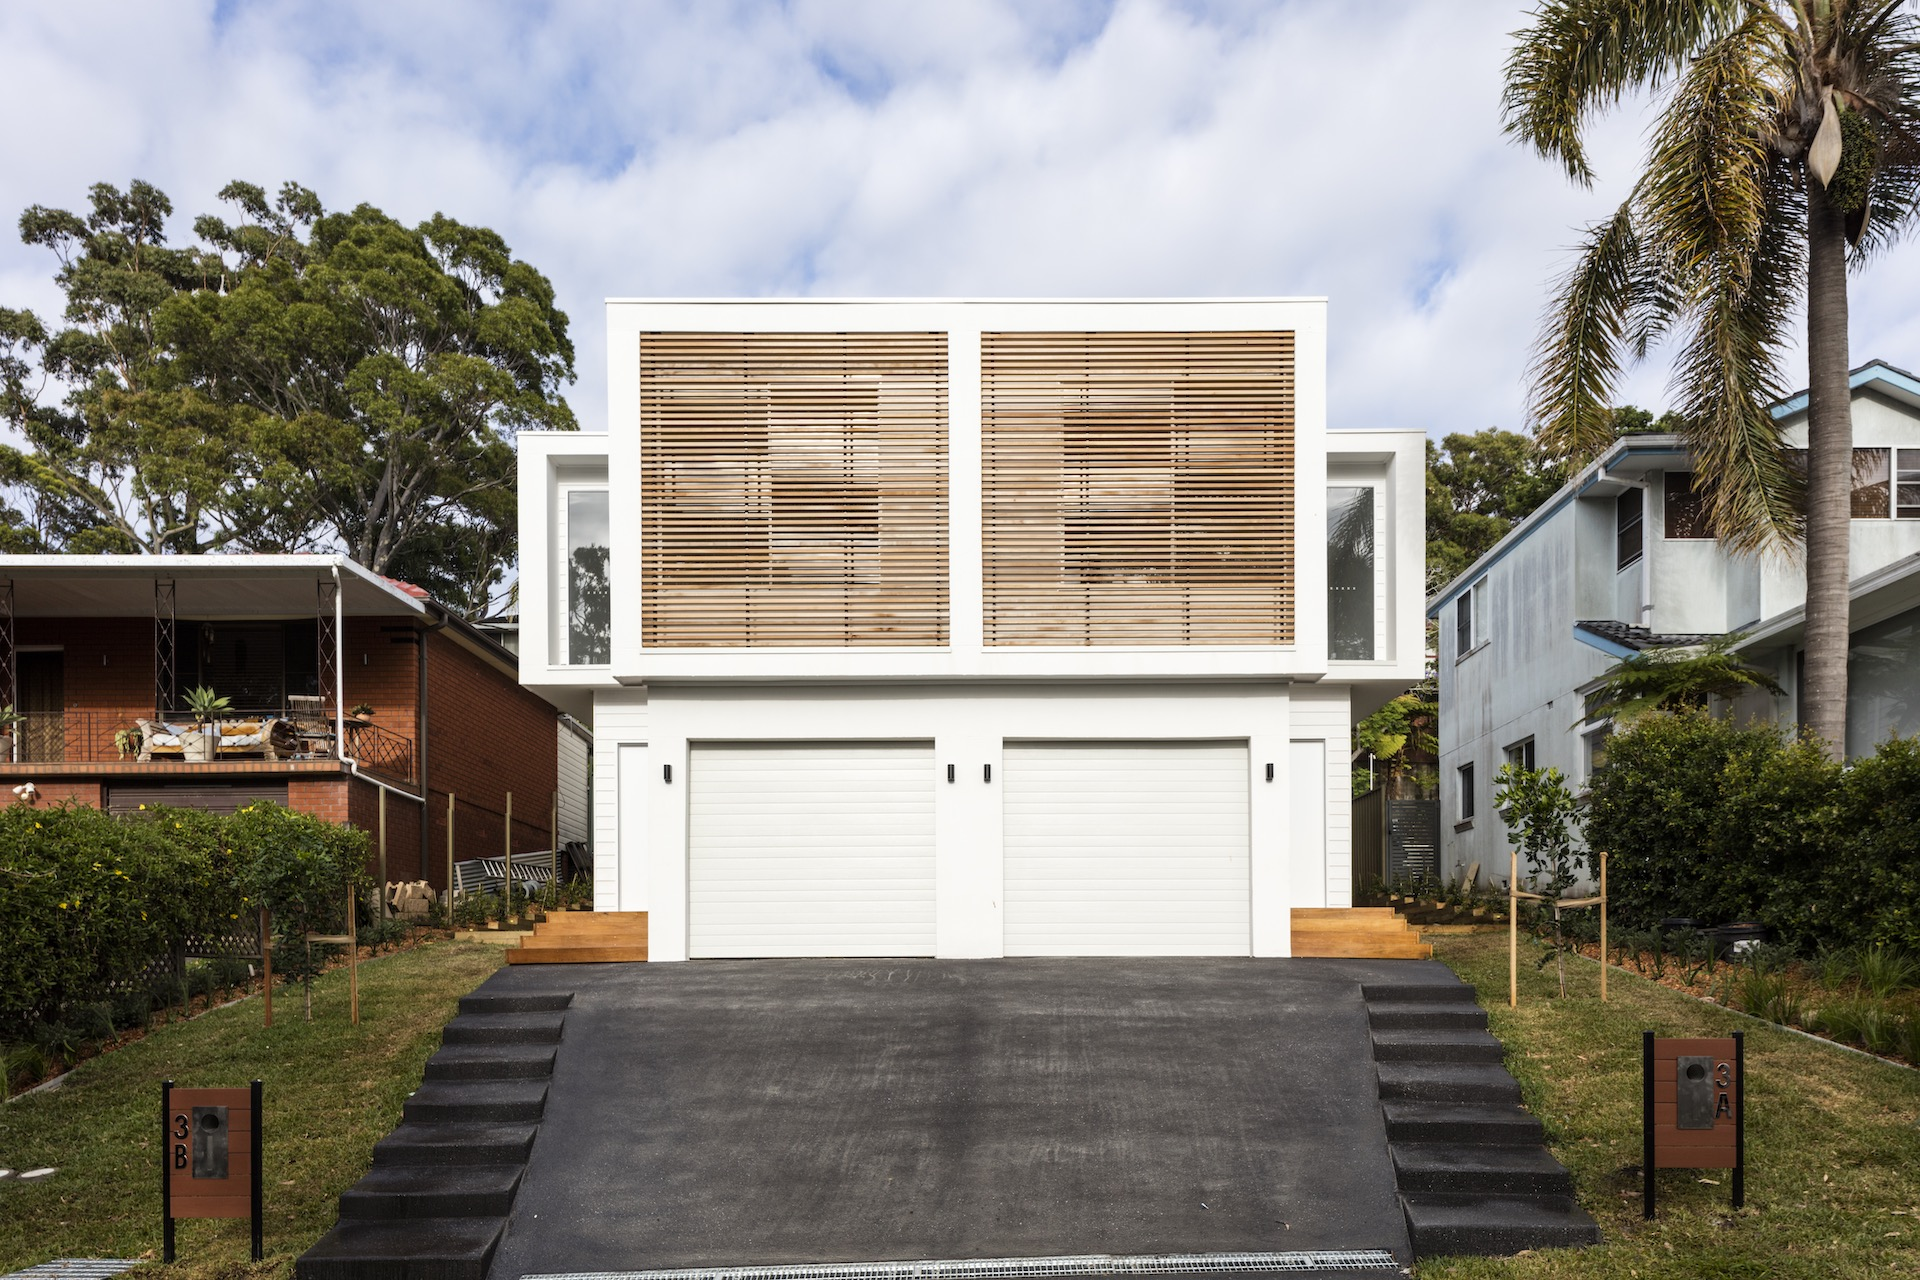 Top tips for designing duplex facades that will stand out